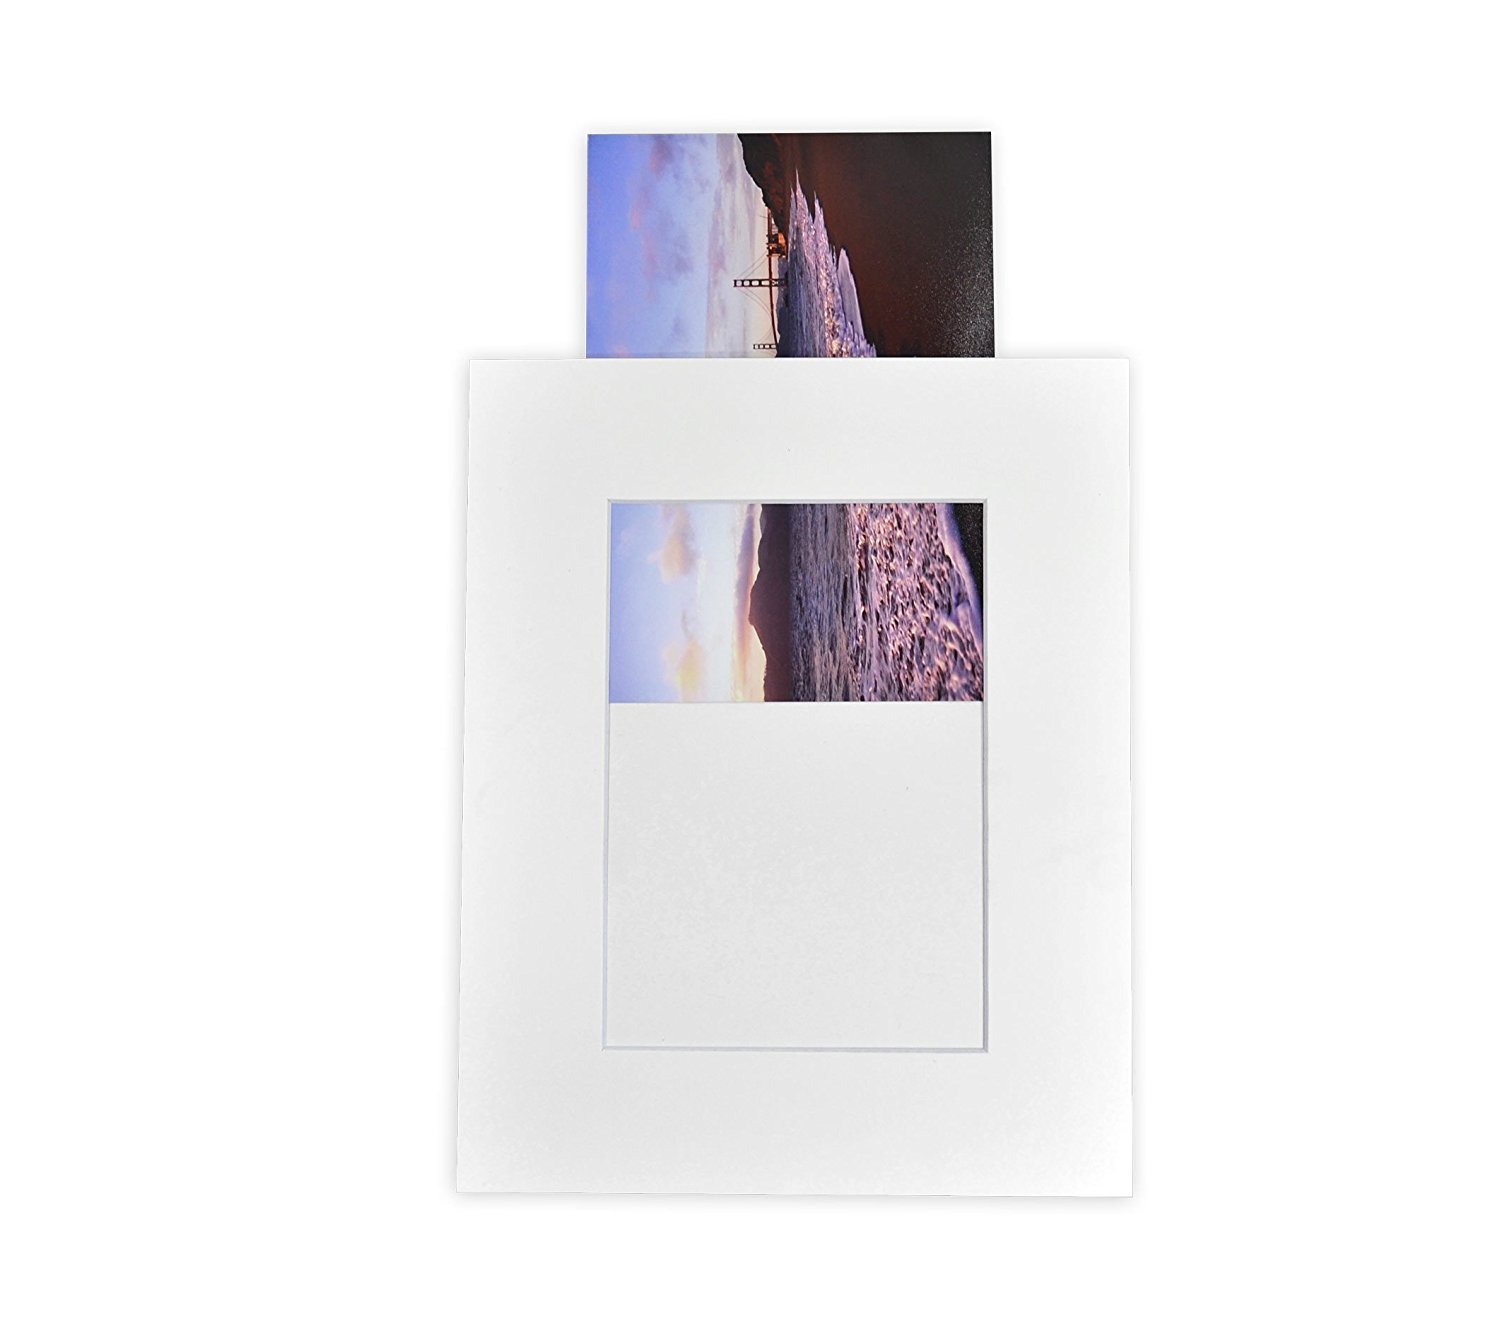 Golden State Art Pack of 10 White 8x10 Slip-in Pre-adhesive Photo Mat for 5x7 picture with backing board pre-assembled, Includes 10 clear bags